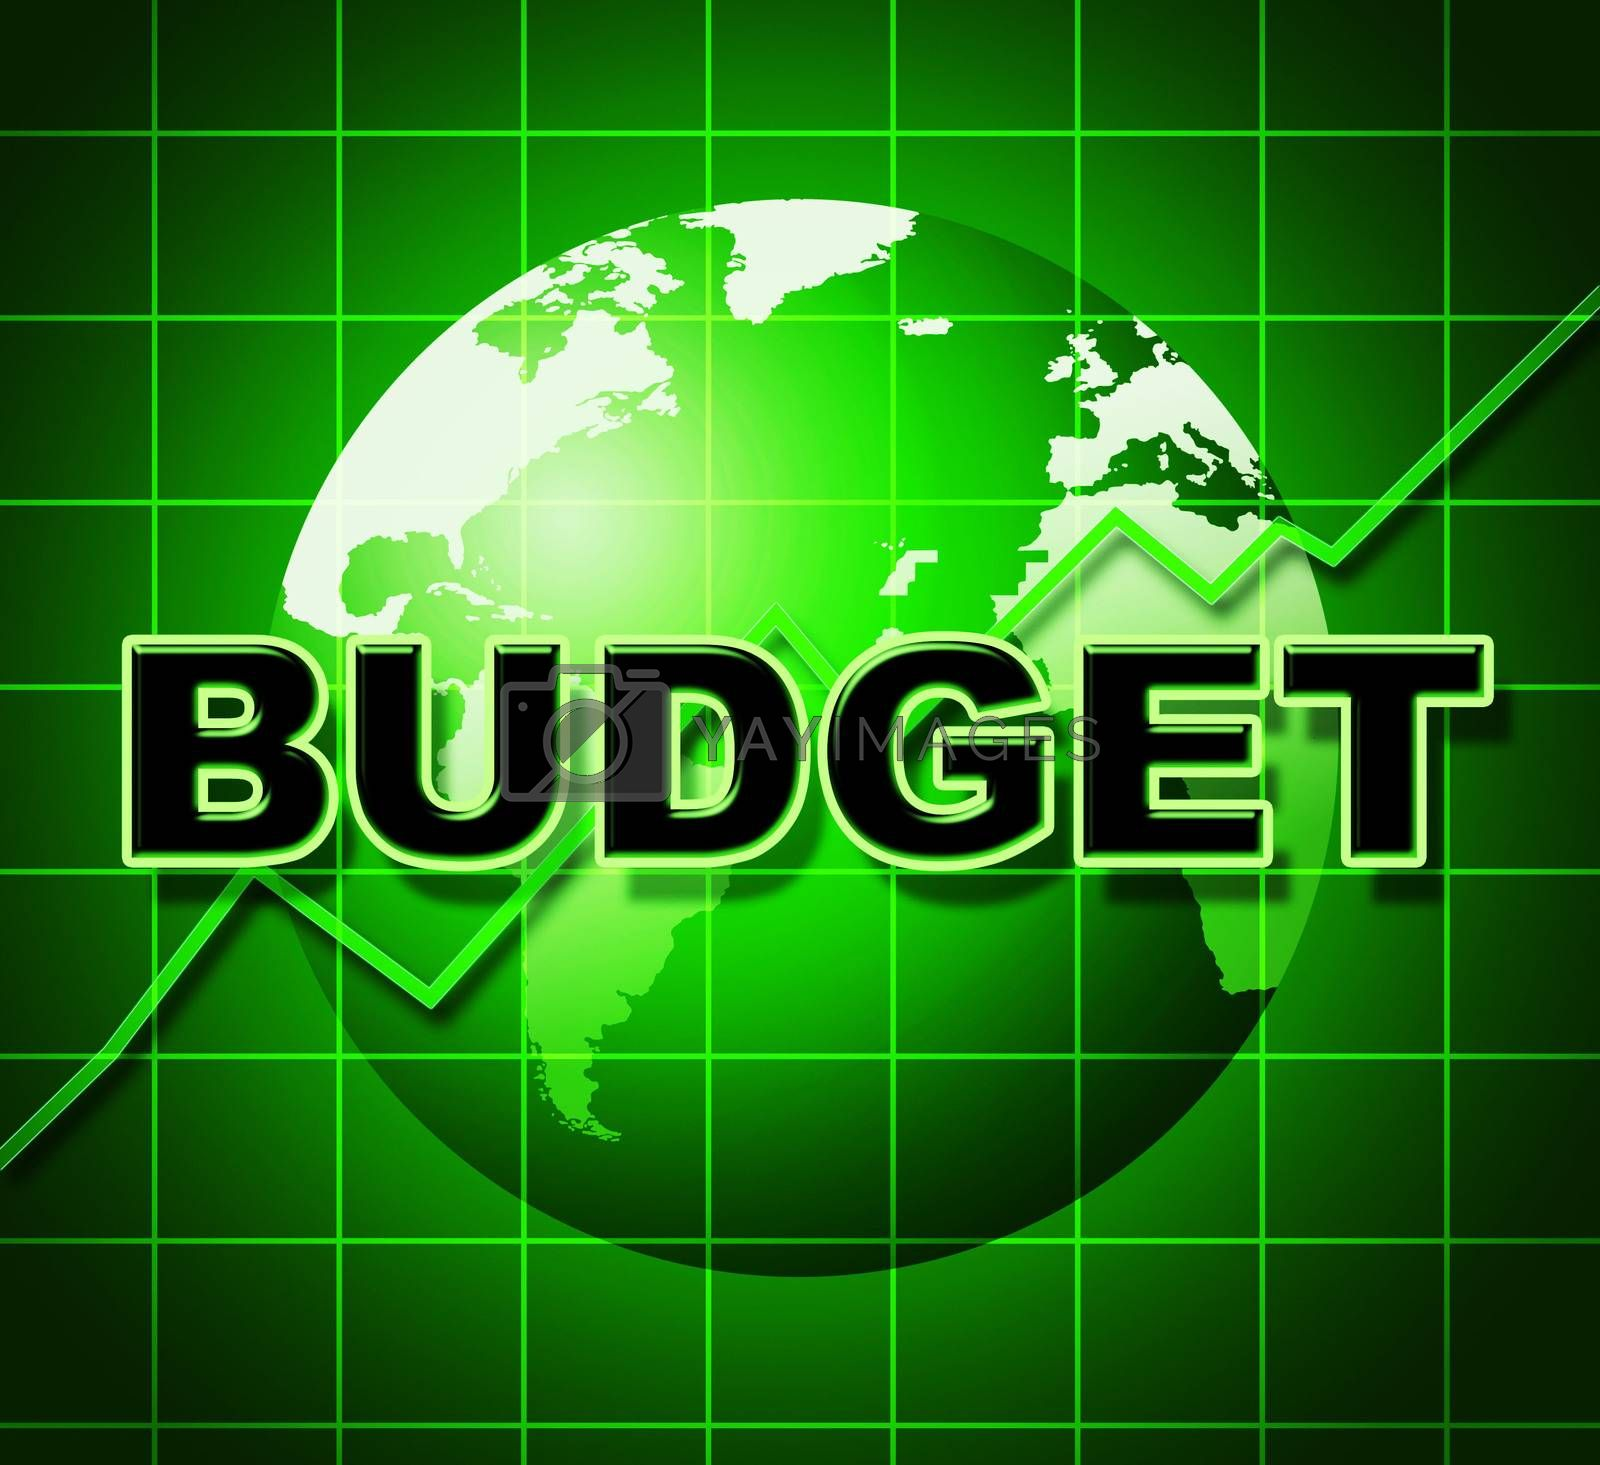 Budget Graph Means Costing Expenditure And Statistic by stuartmiles